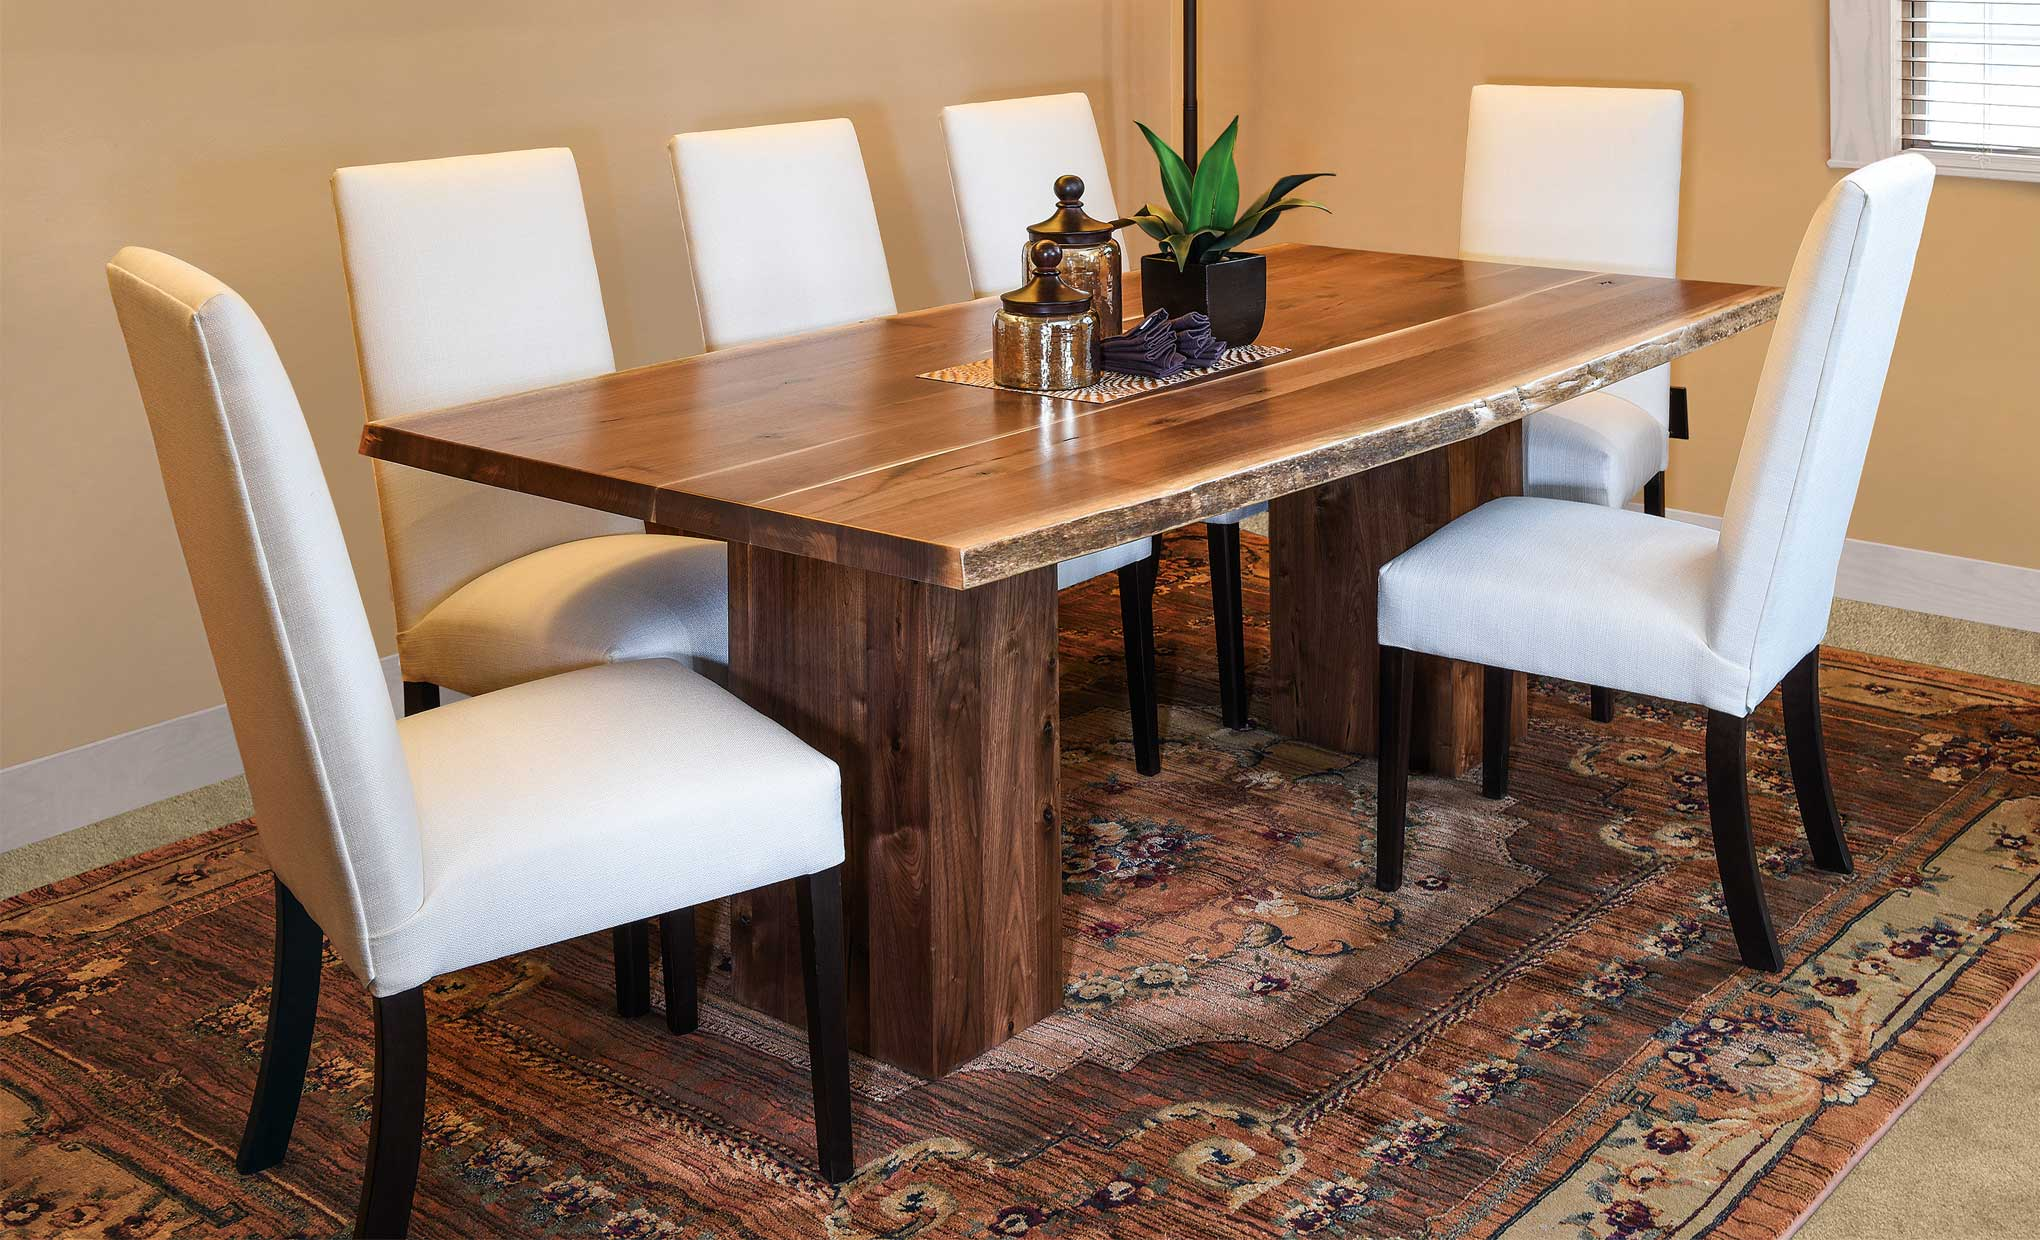 Rio Vista Live Edge Amish Table Set